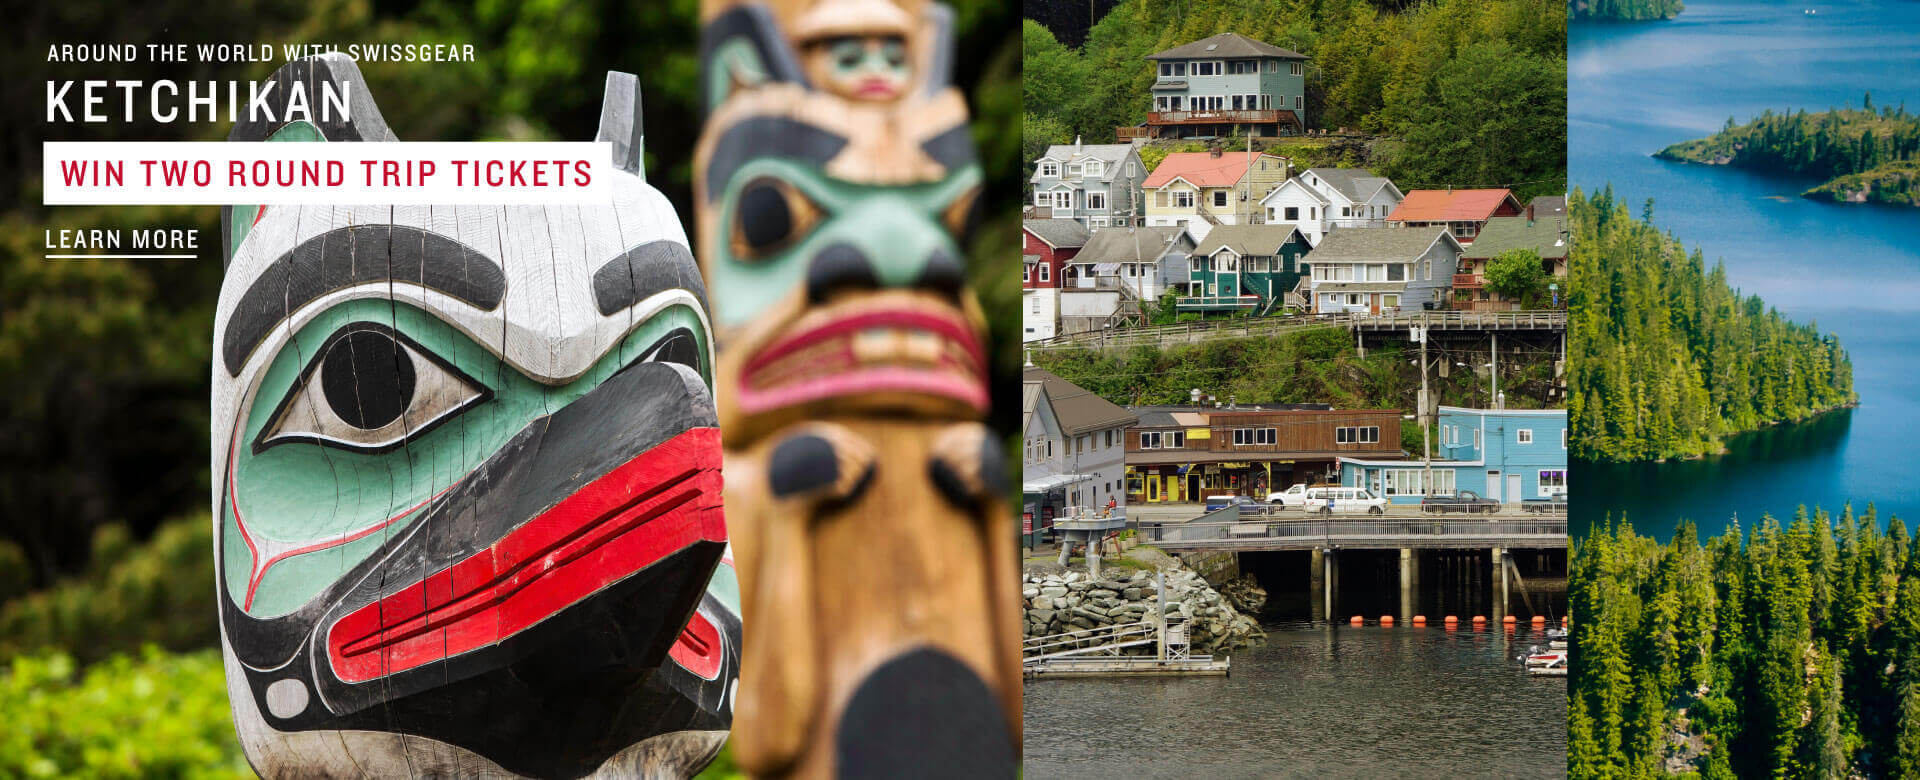 Ketchikan: A Wild Frontier with Deep History and Versatile Culture